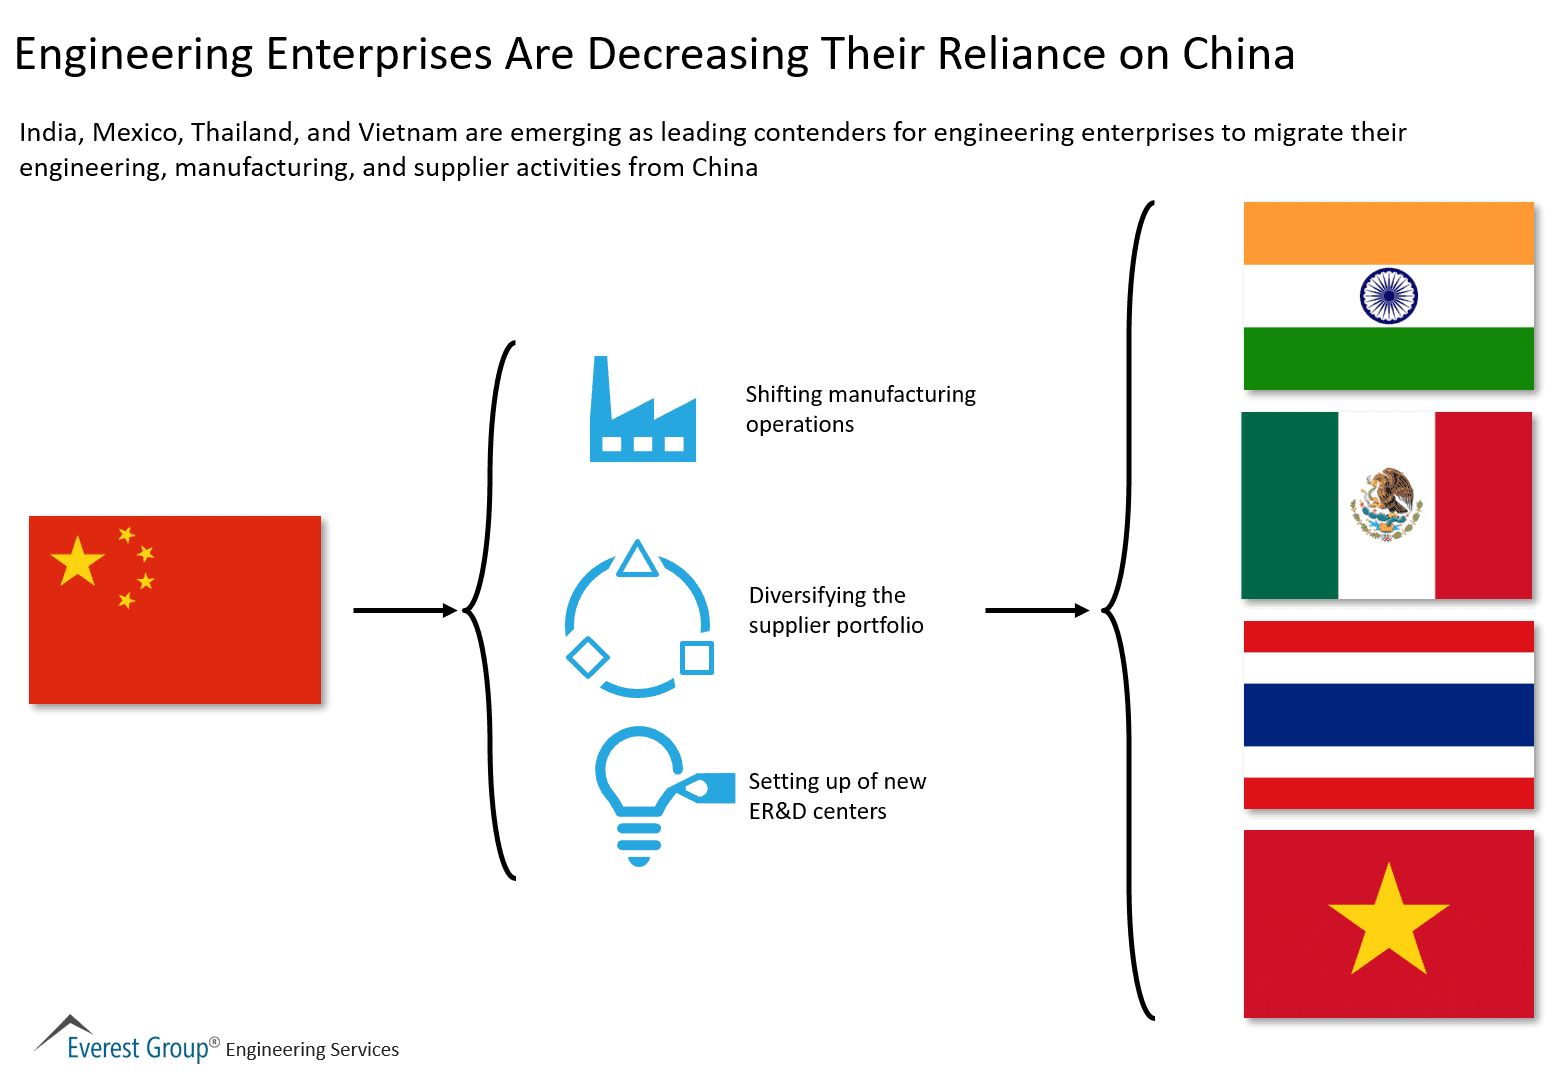 Engineering Enterprises Are Decreasing Their Reliance on China